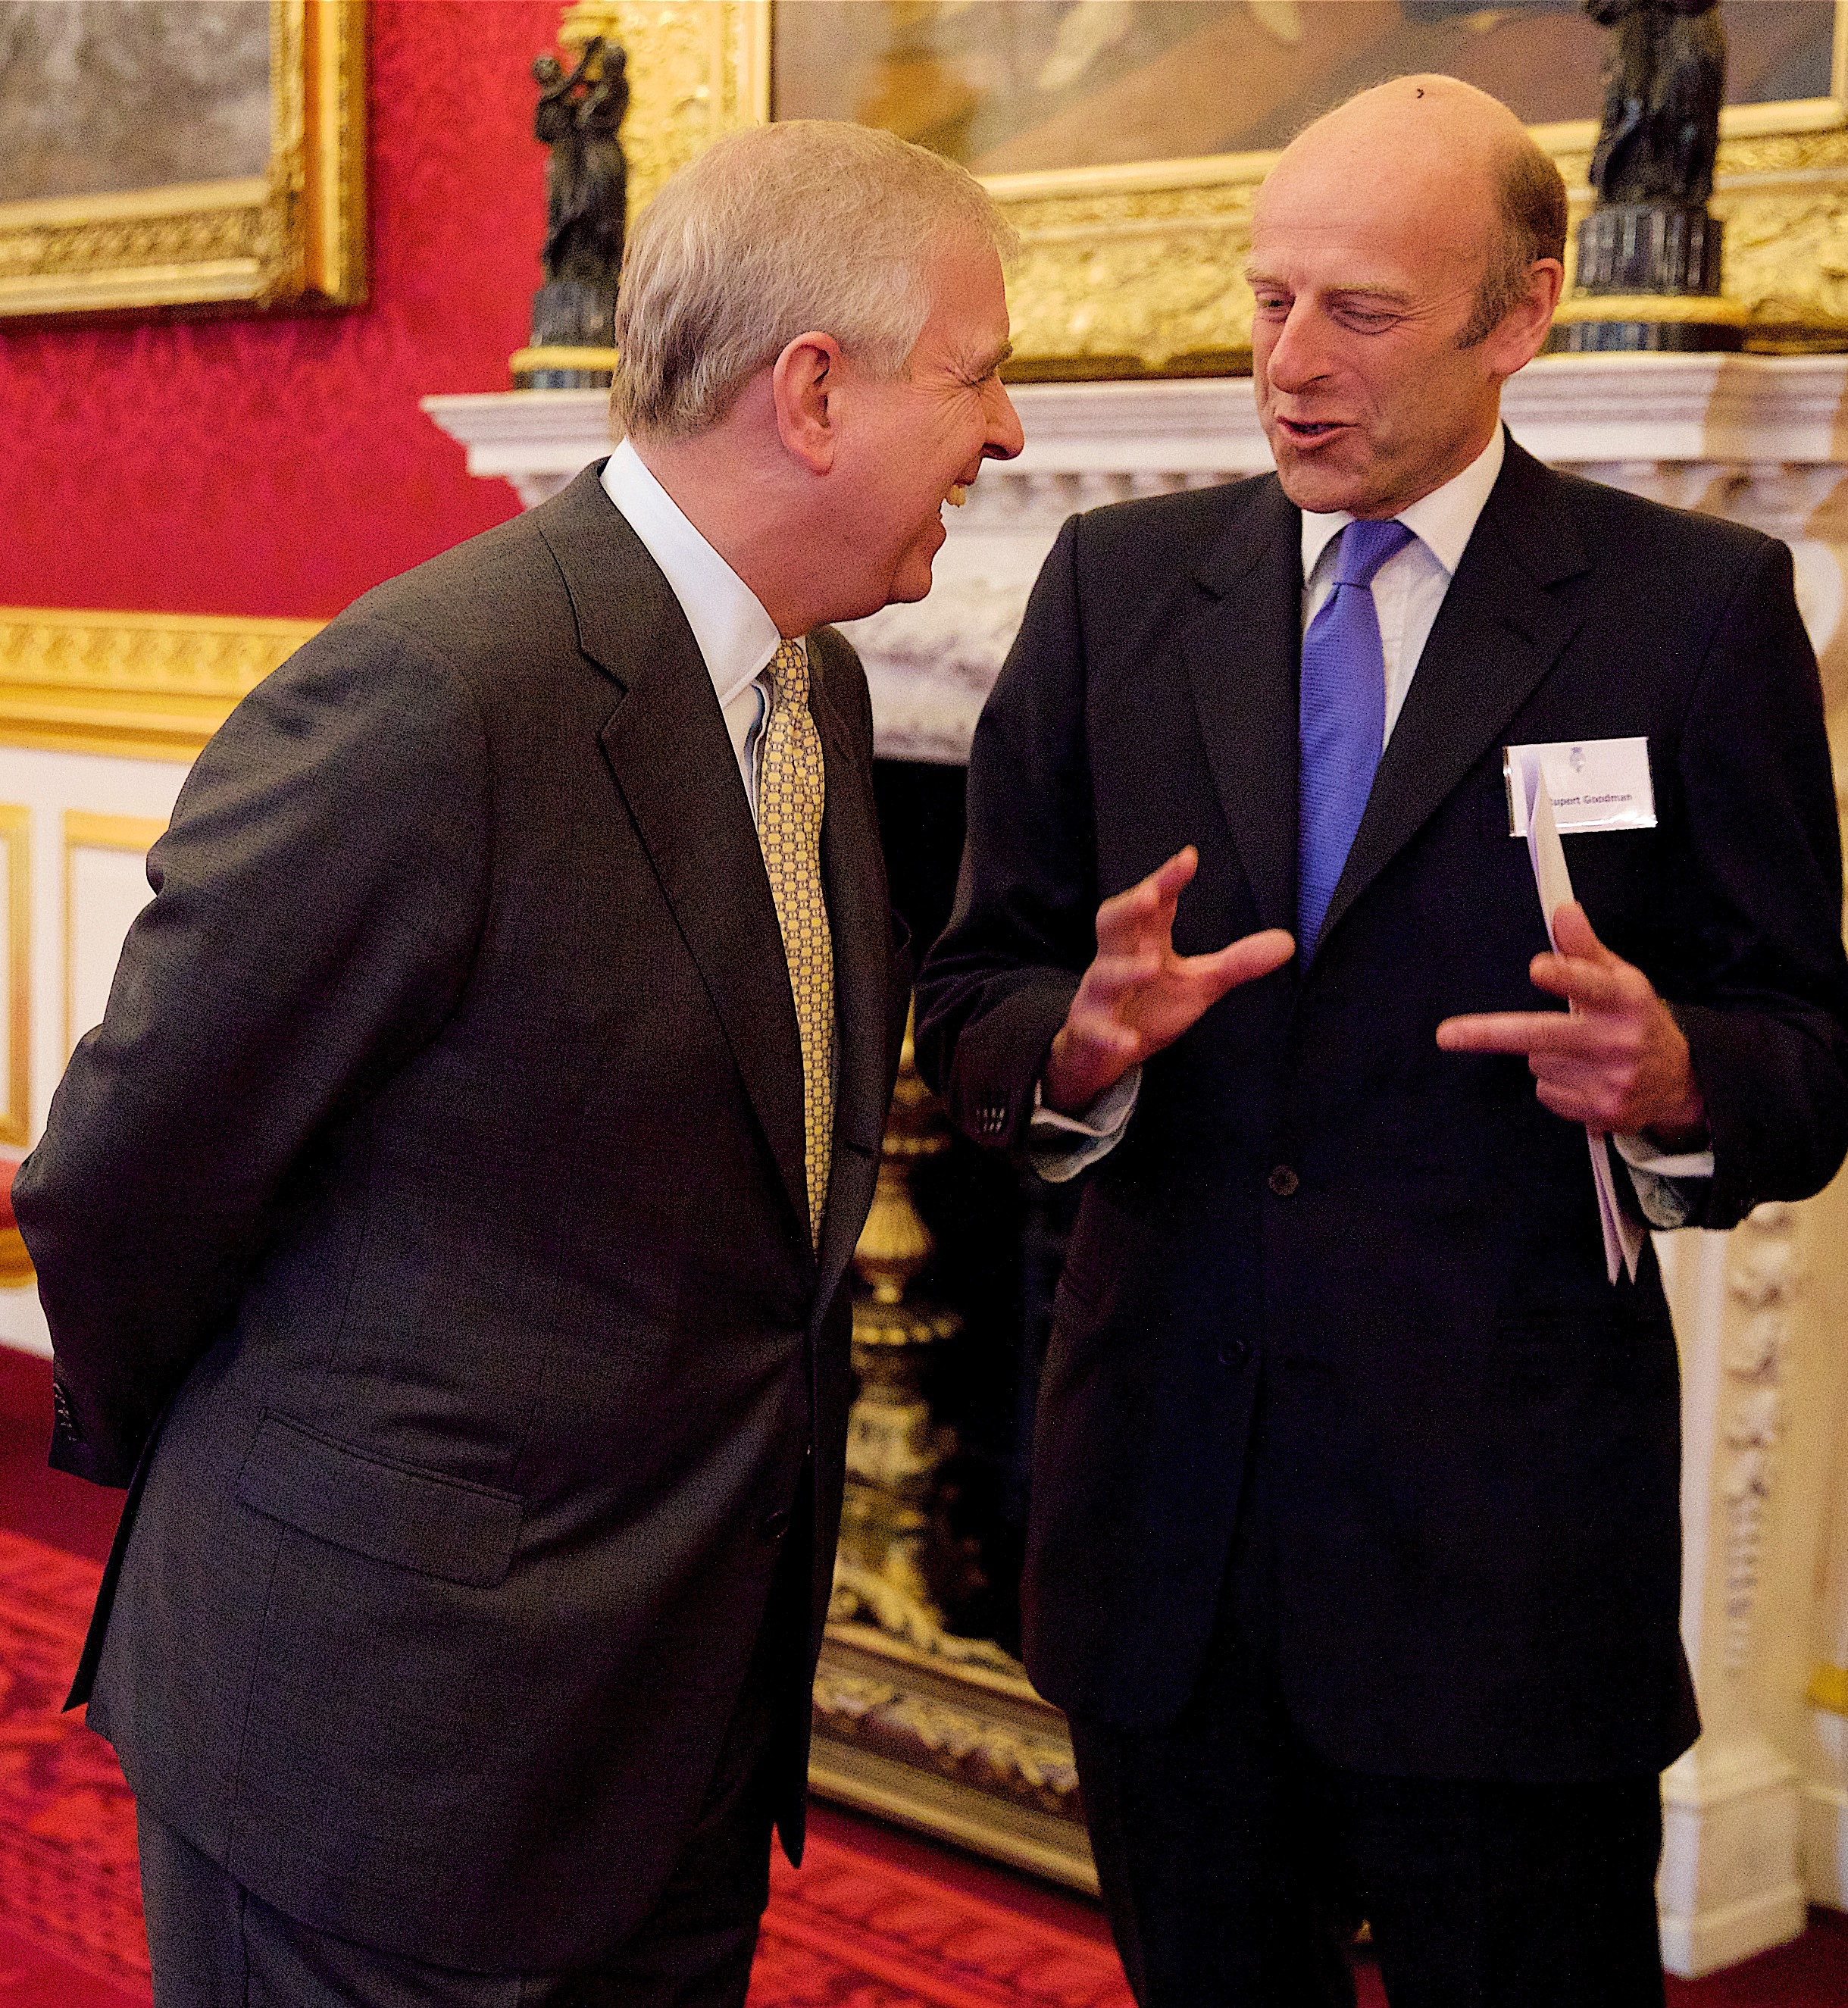 The Duke of York and Rupert Goodman